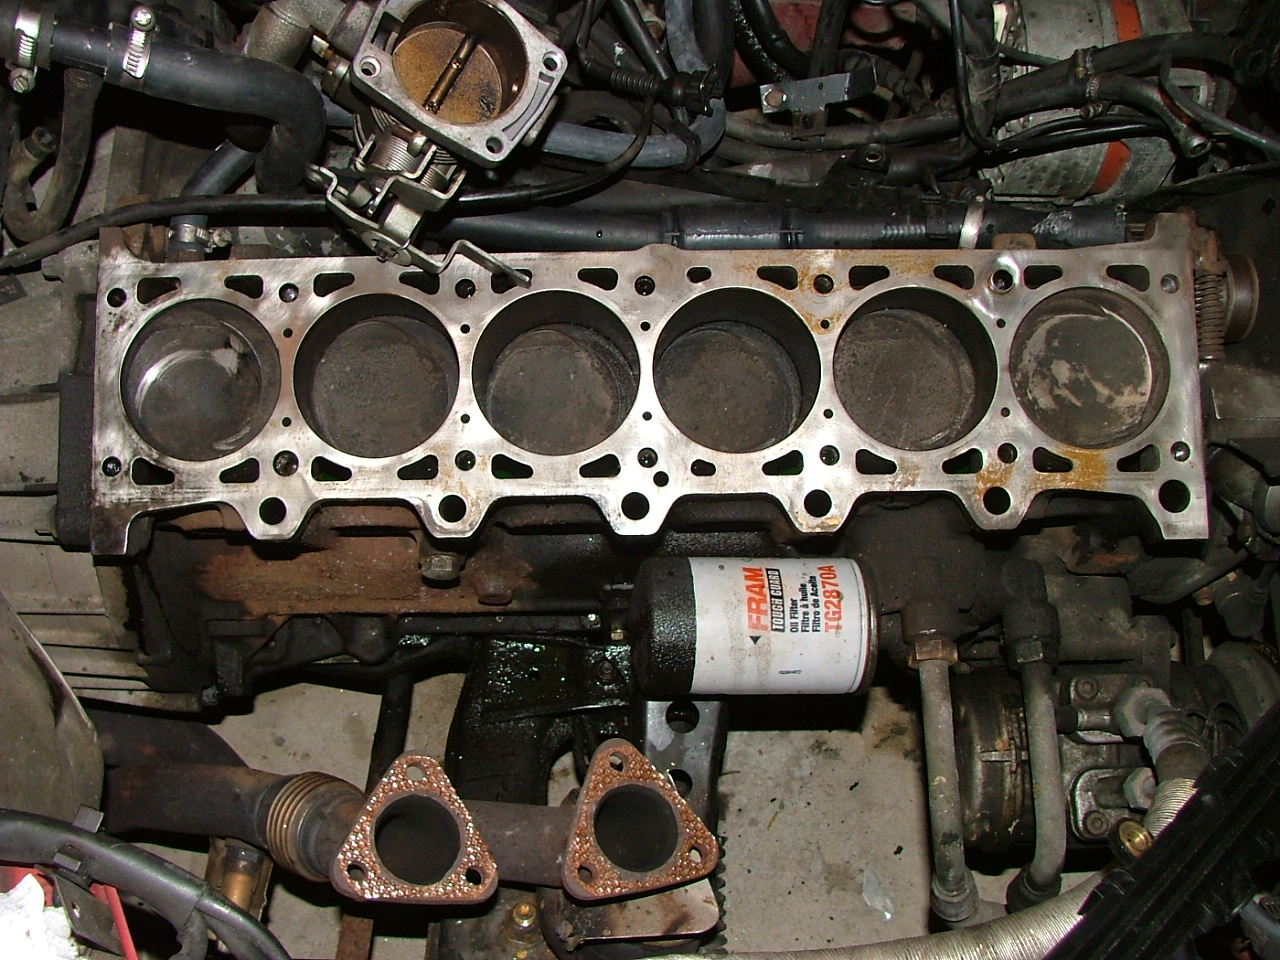 A BMW M20B25 engine with the cylinder head removed, showing the pistons in  the six cylinders of the engine